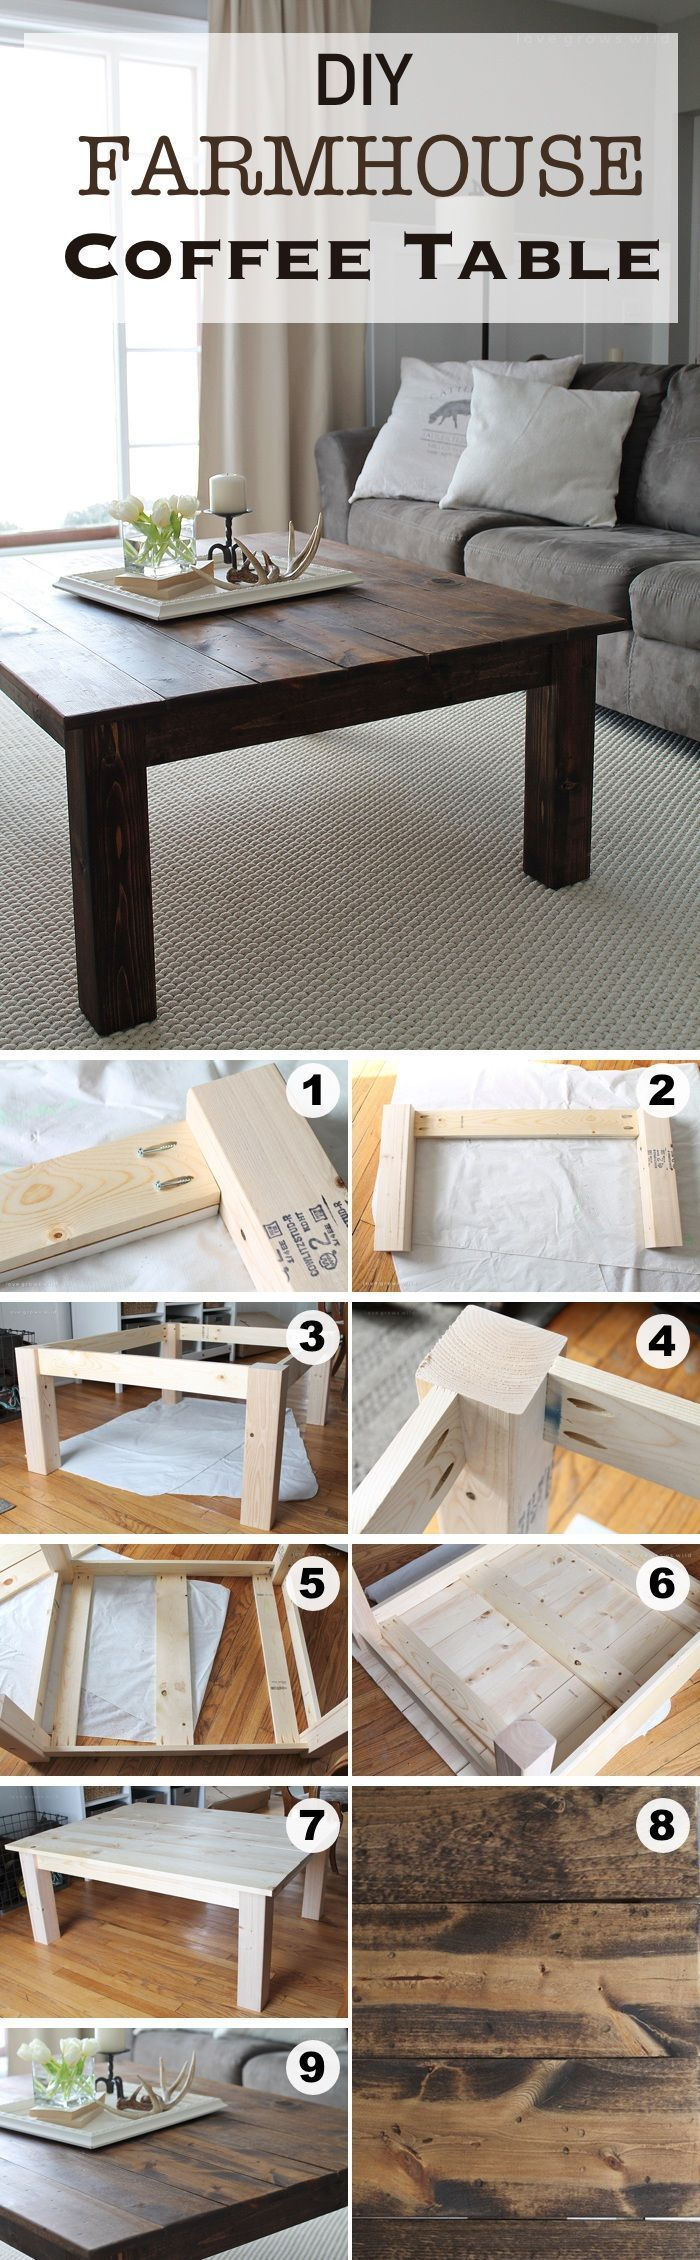 15 creative diy coffee table ideas you can build yourself